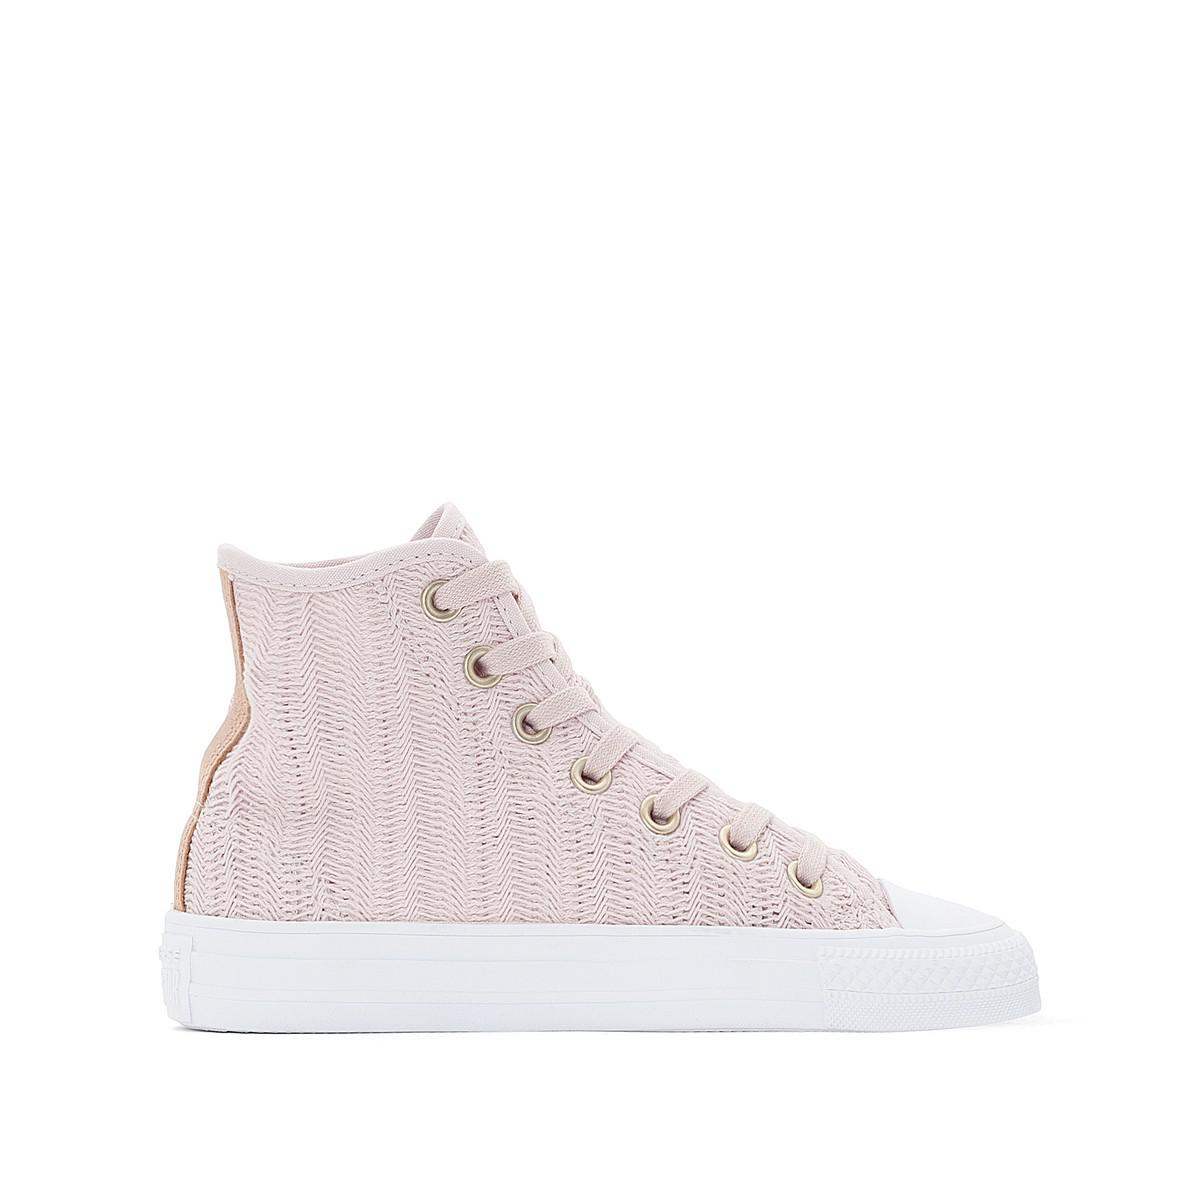 low price online really cheap shoes online CONVERSE CTAS Hi Herringbone Mesh High Top Trainers manchester great sale for sale 0PYTfJ